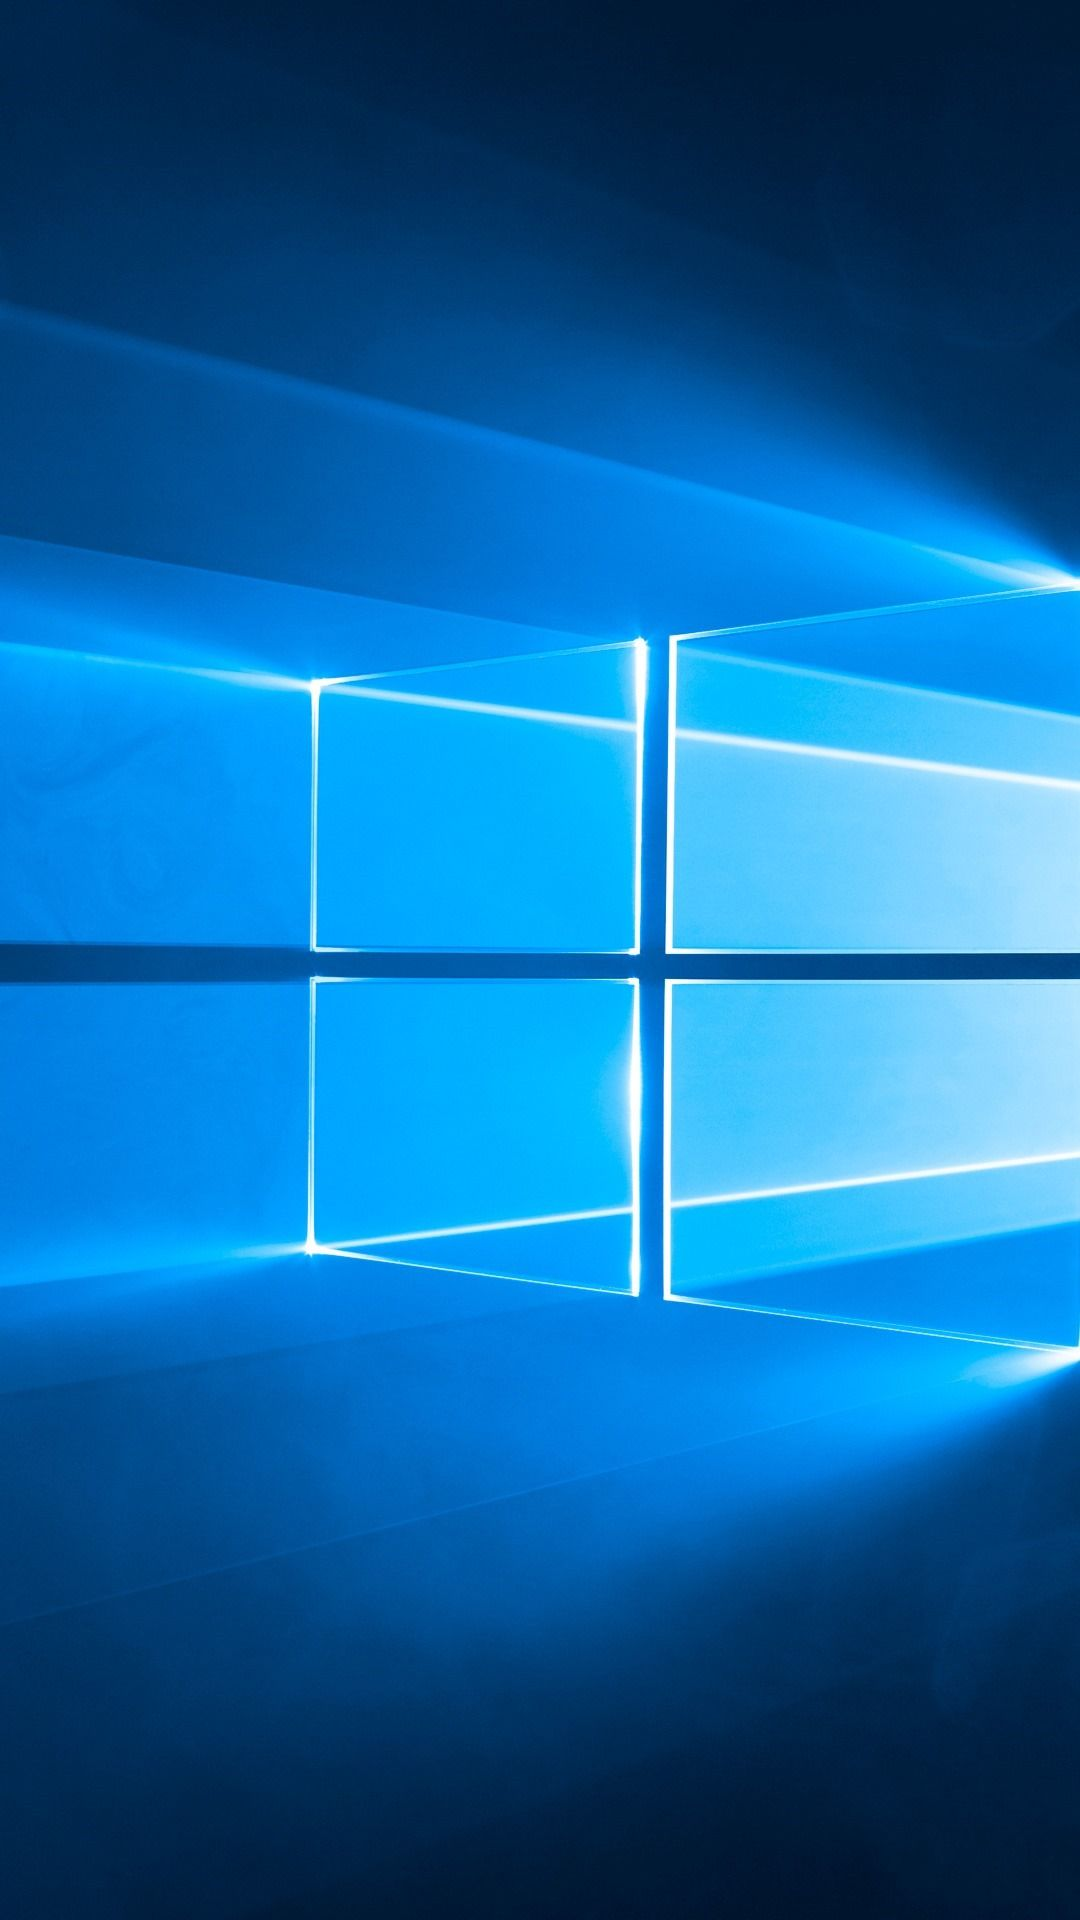 Microsoft Wallpaper Android Download Windows Wallpaper Microsoft Wallpaper Windows Vista Wallpaper